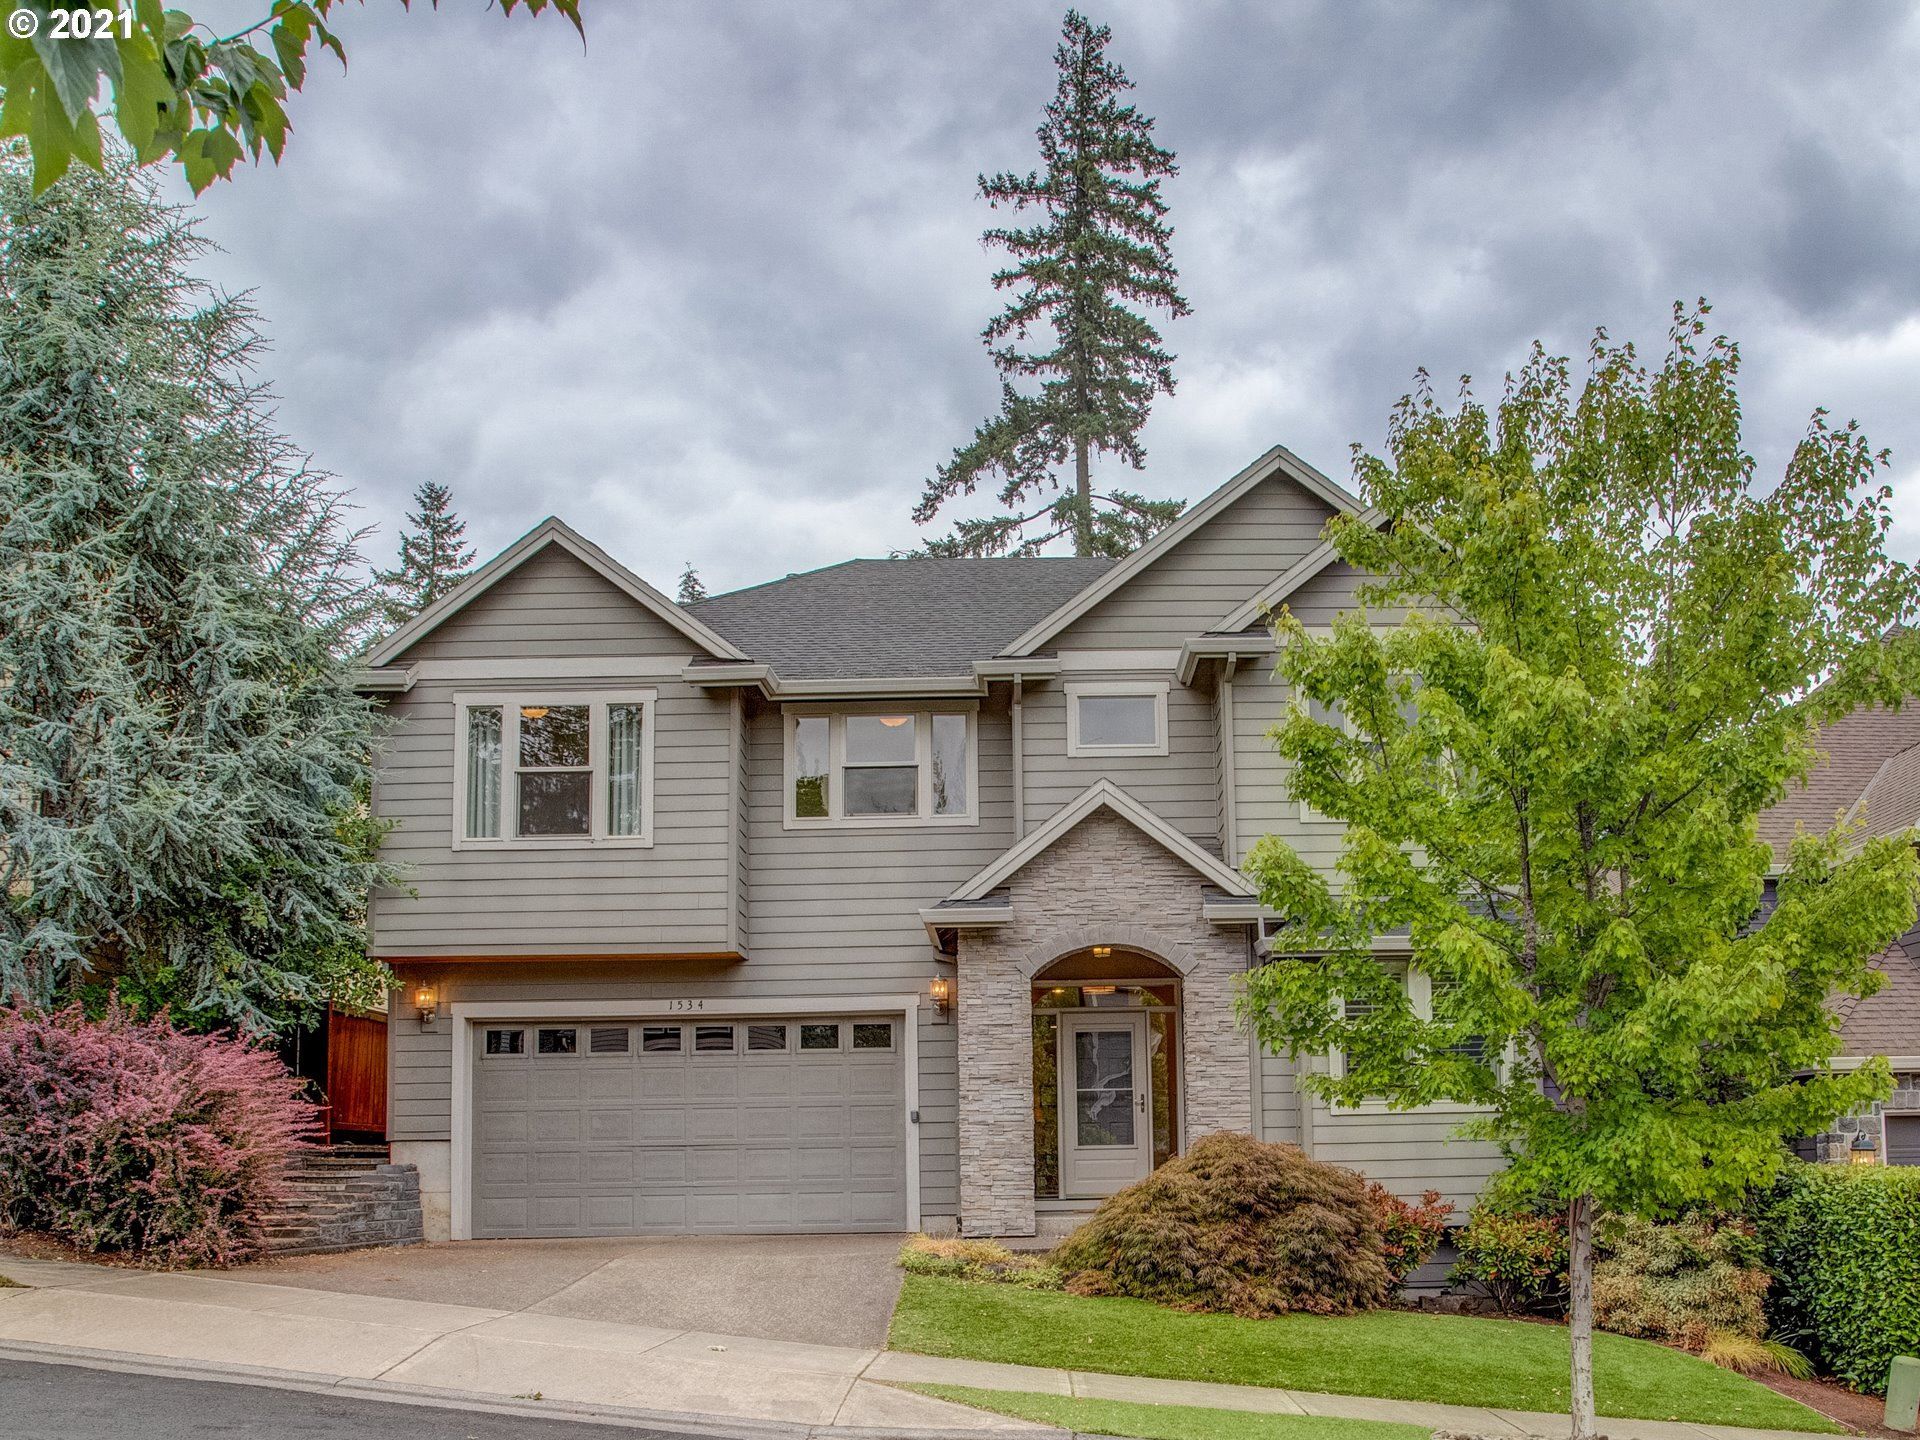 1534 NW 114TH AVE, Portland, OR 97229 - MLS#: 21281519